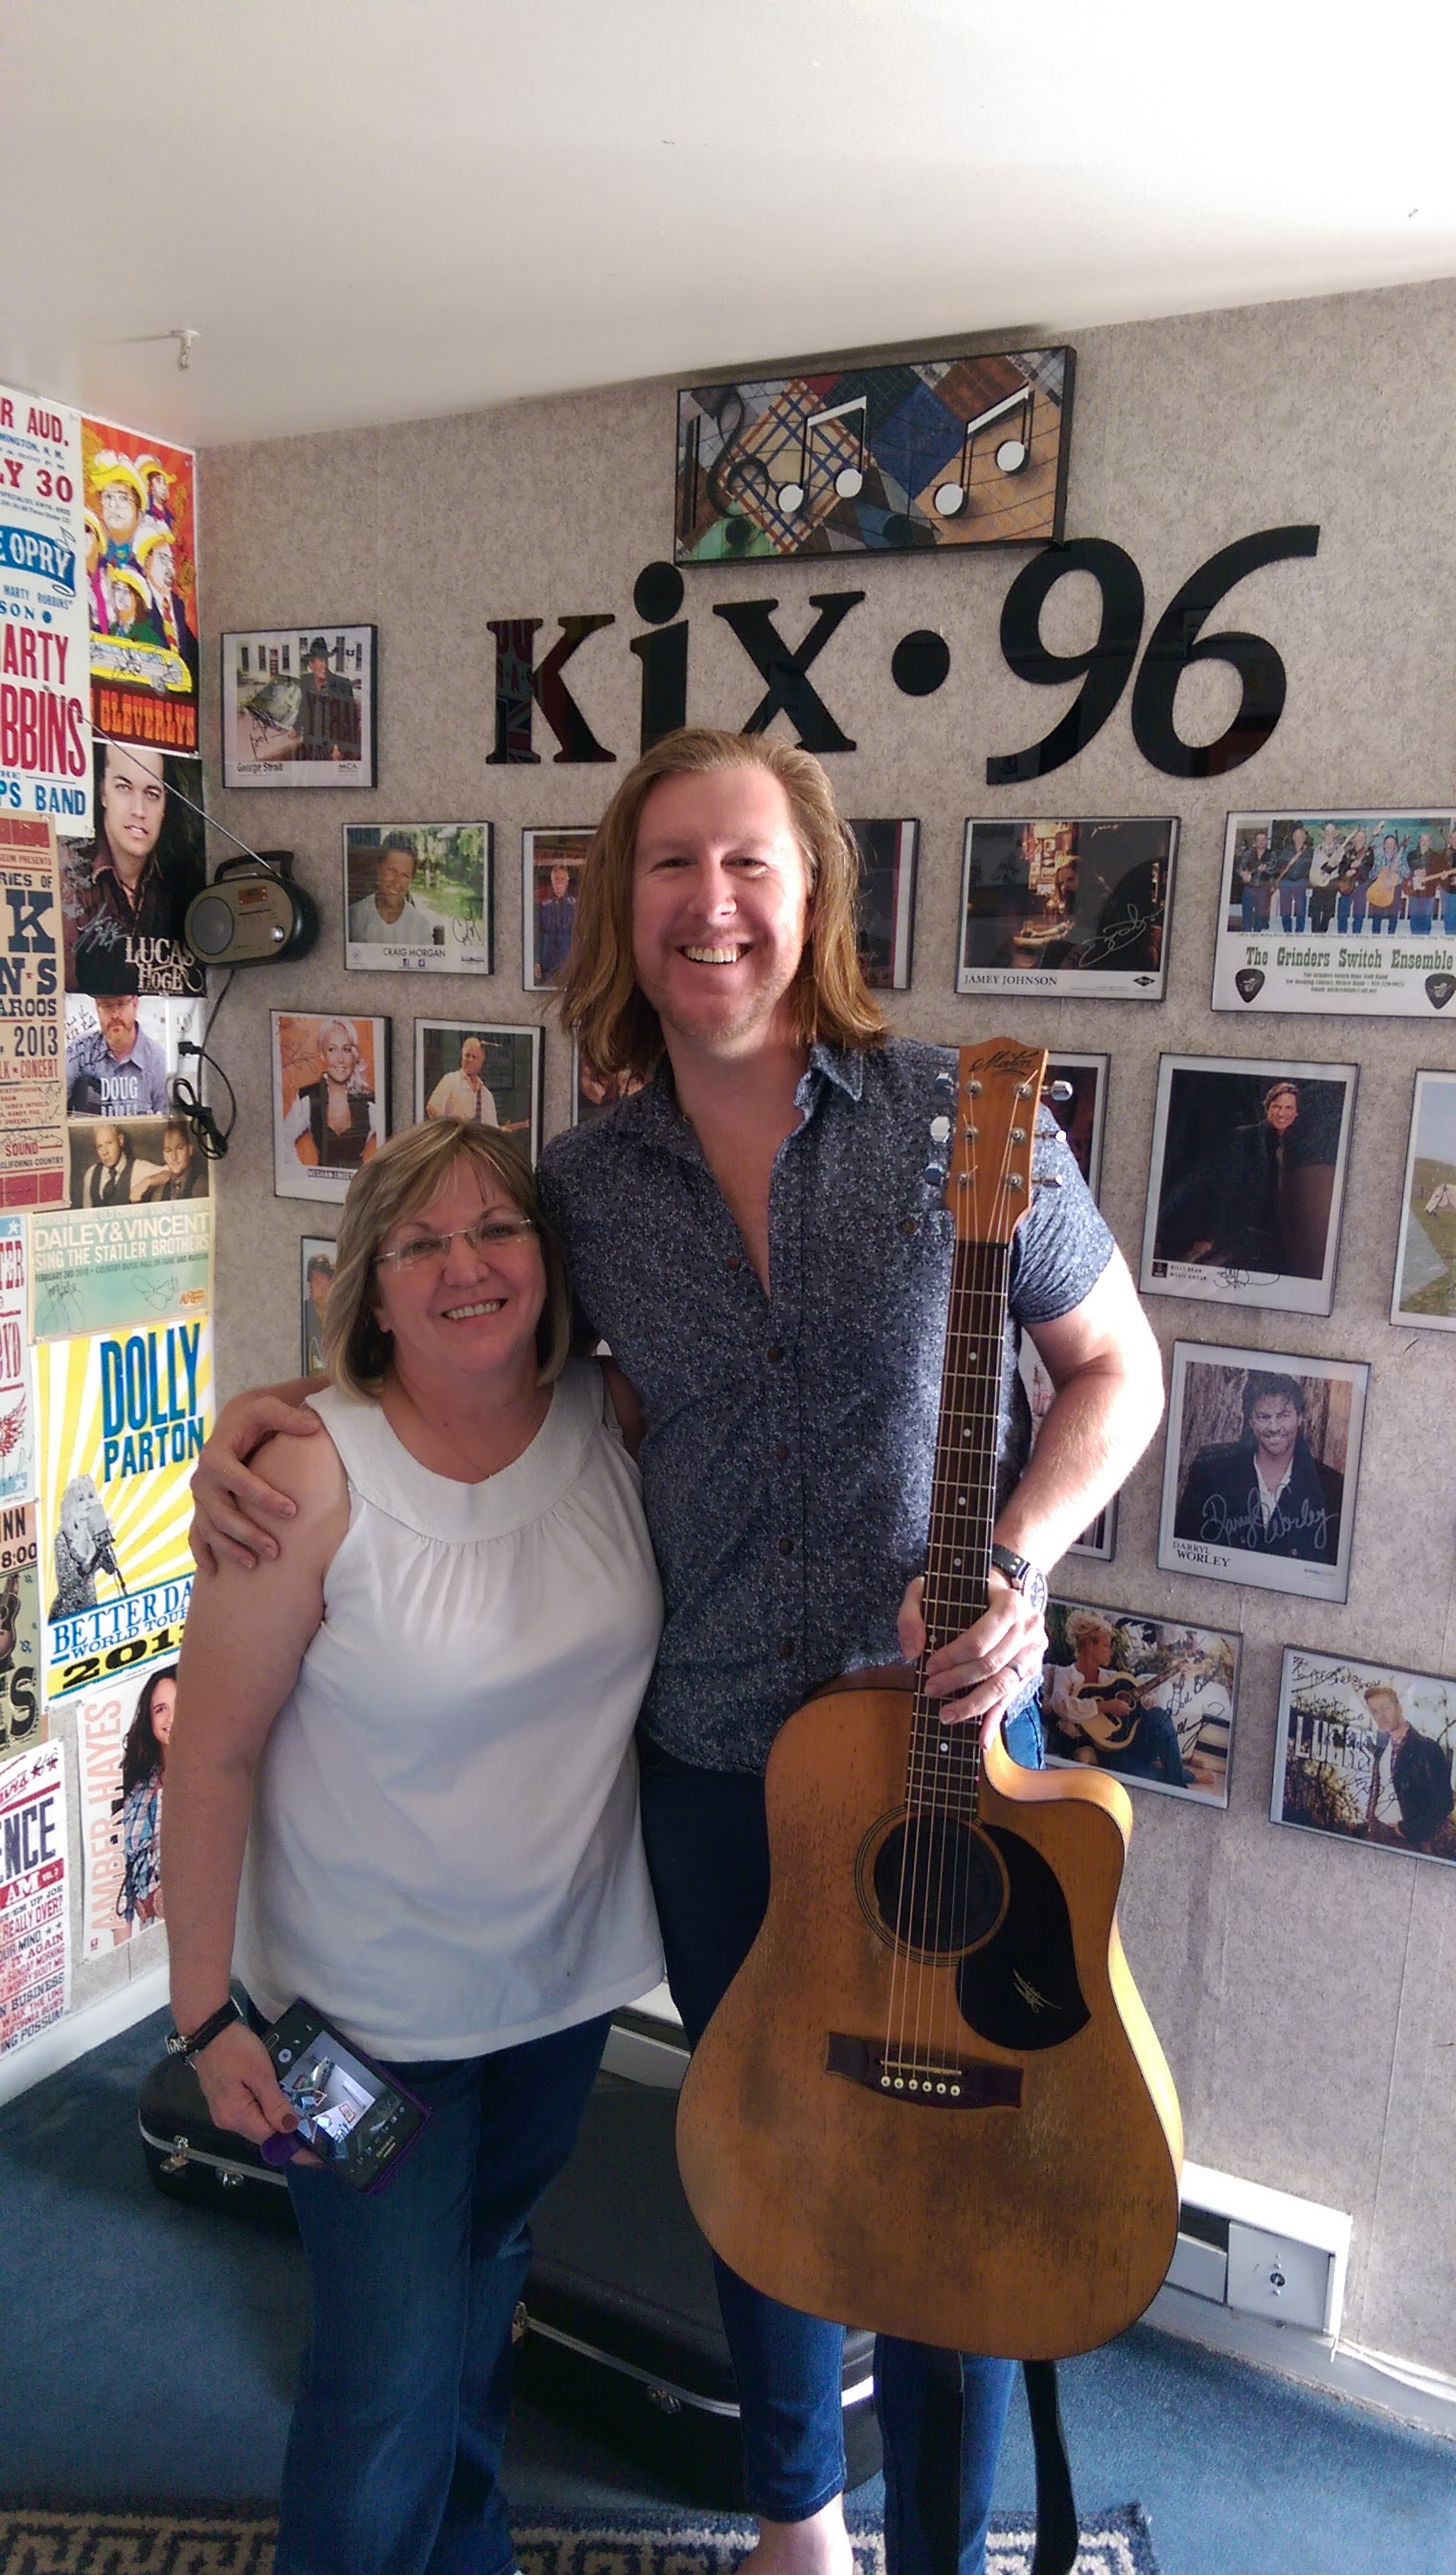 Sheila from Kix96 Centreville, TN